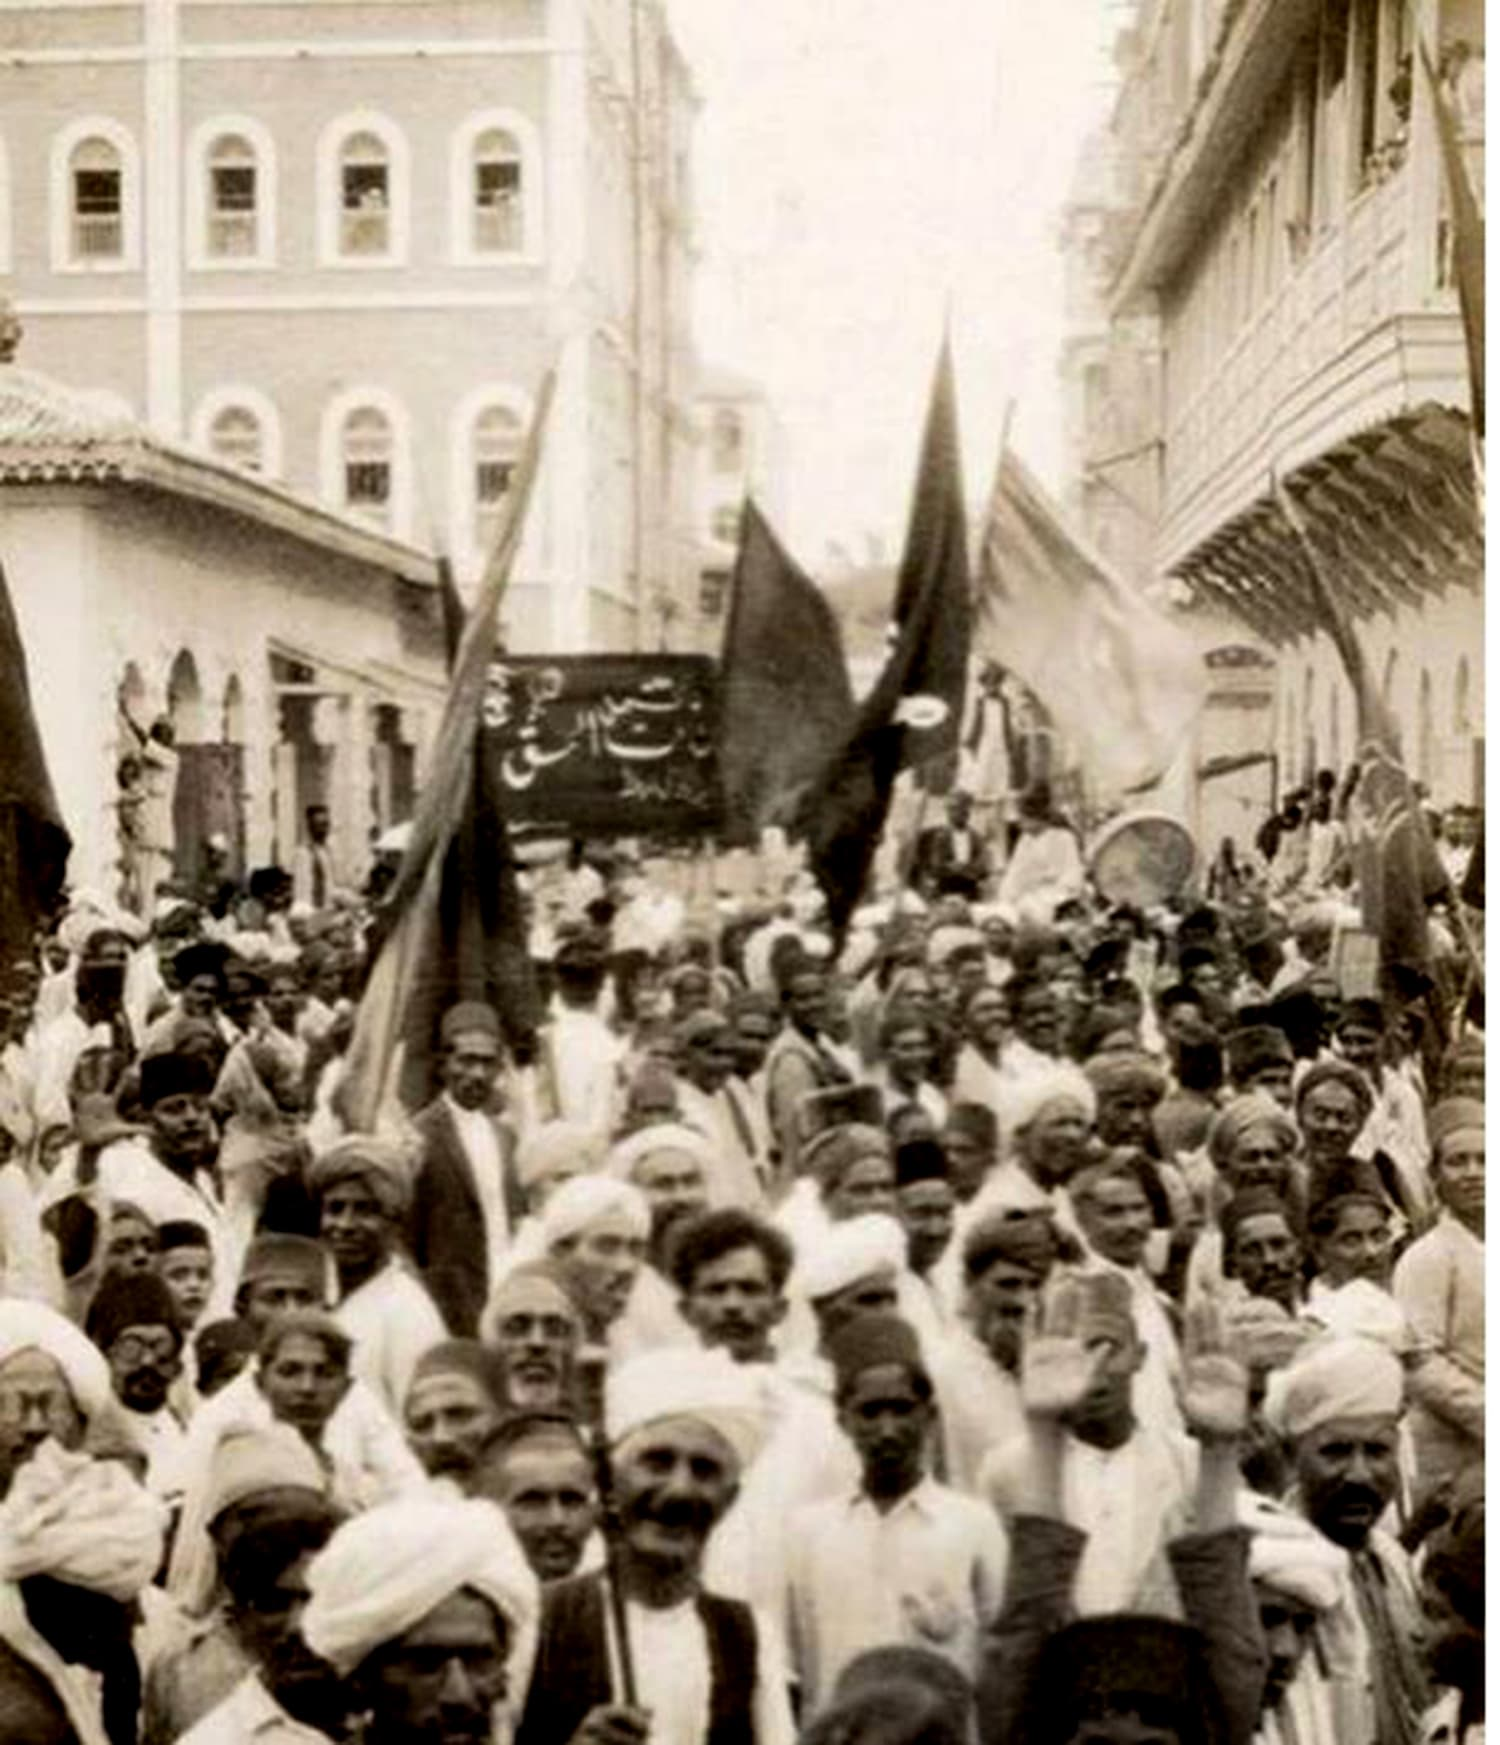 Eid Miladun Nabi procession in Lahore in the 1930s.